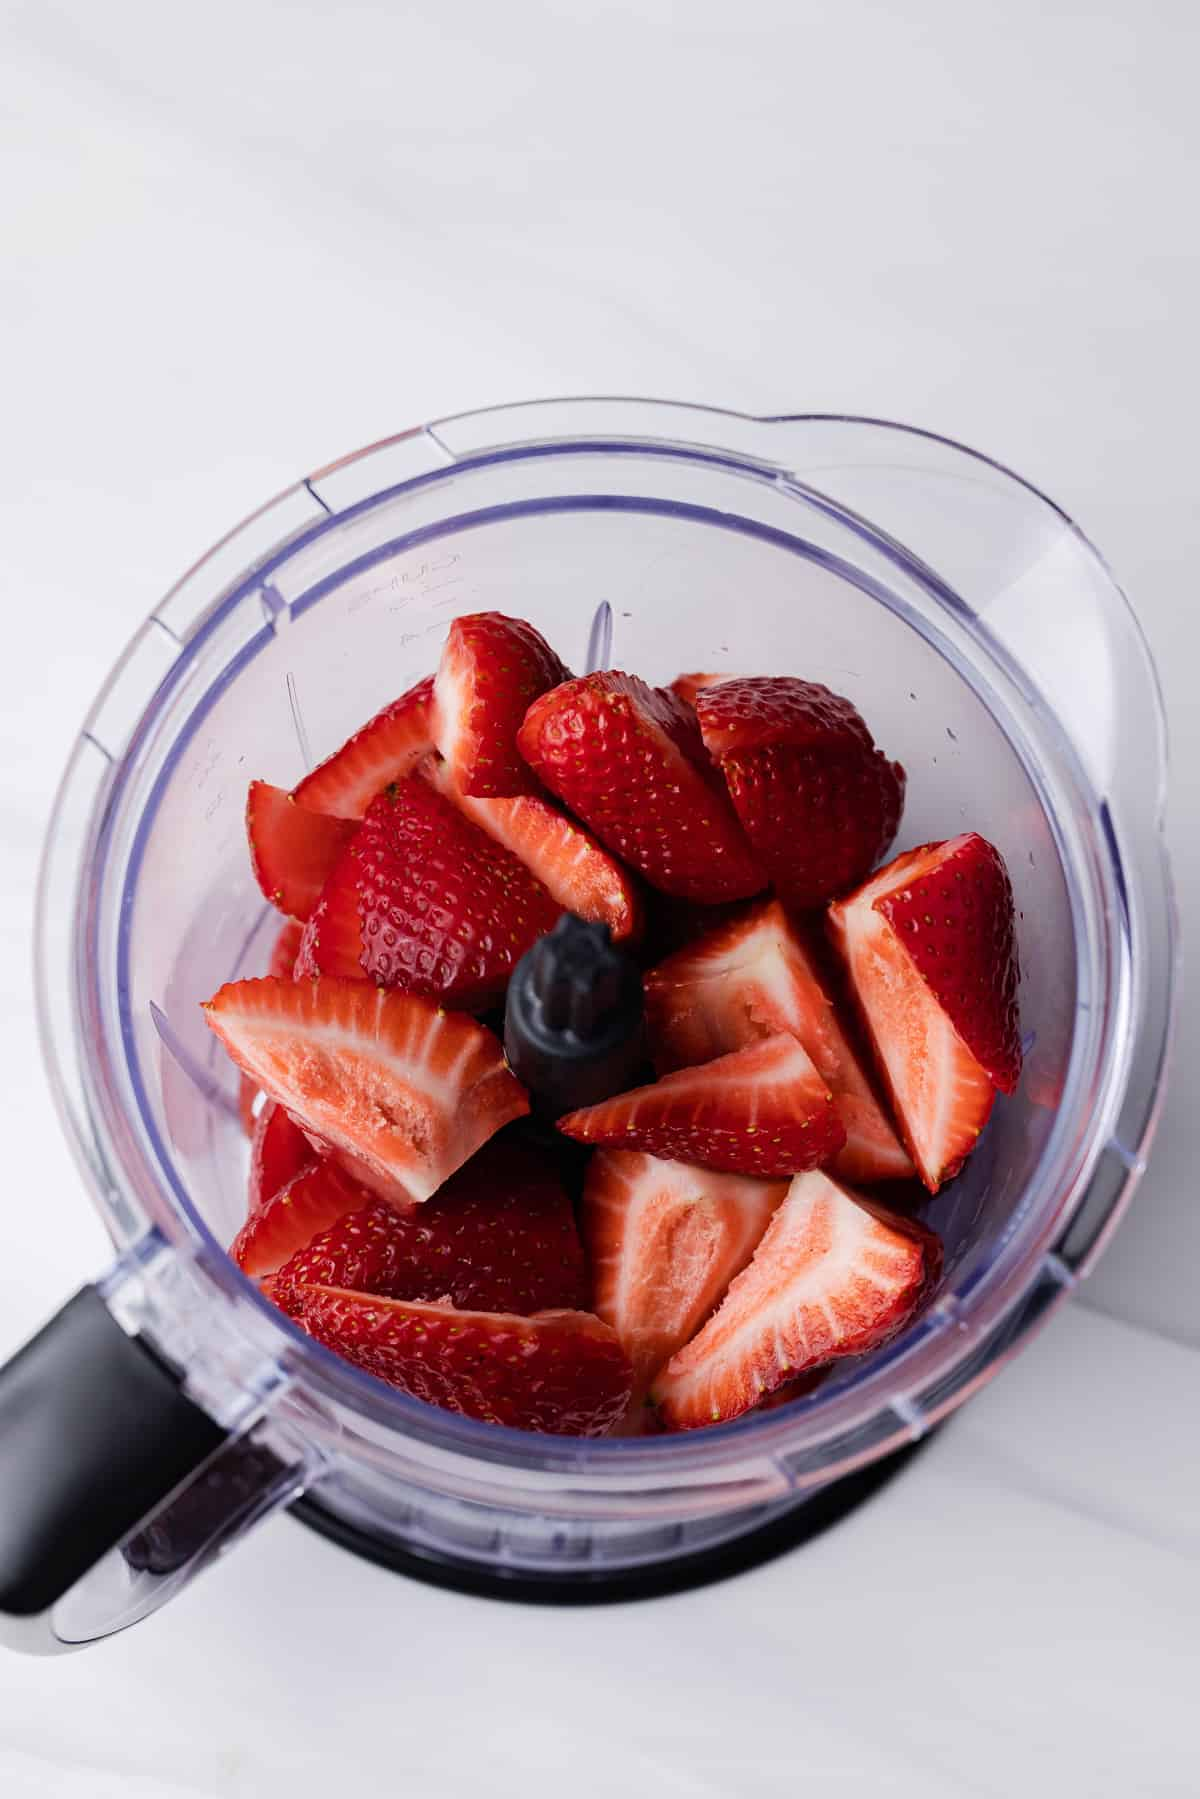 strawberries in a food processor